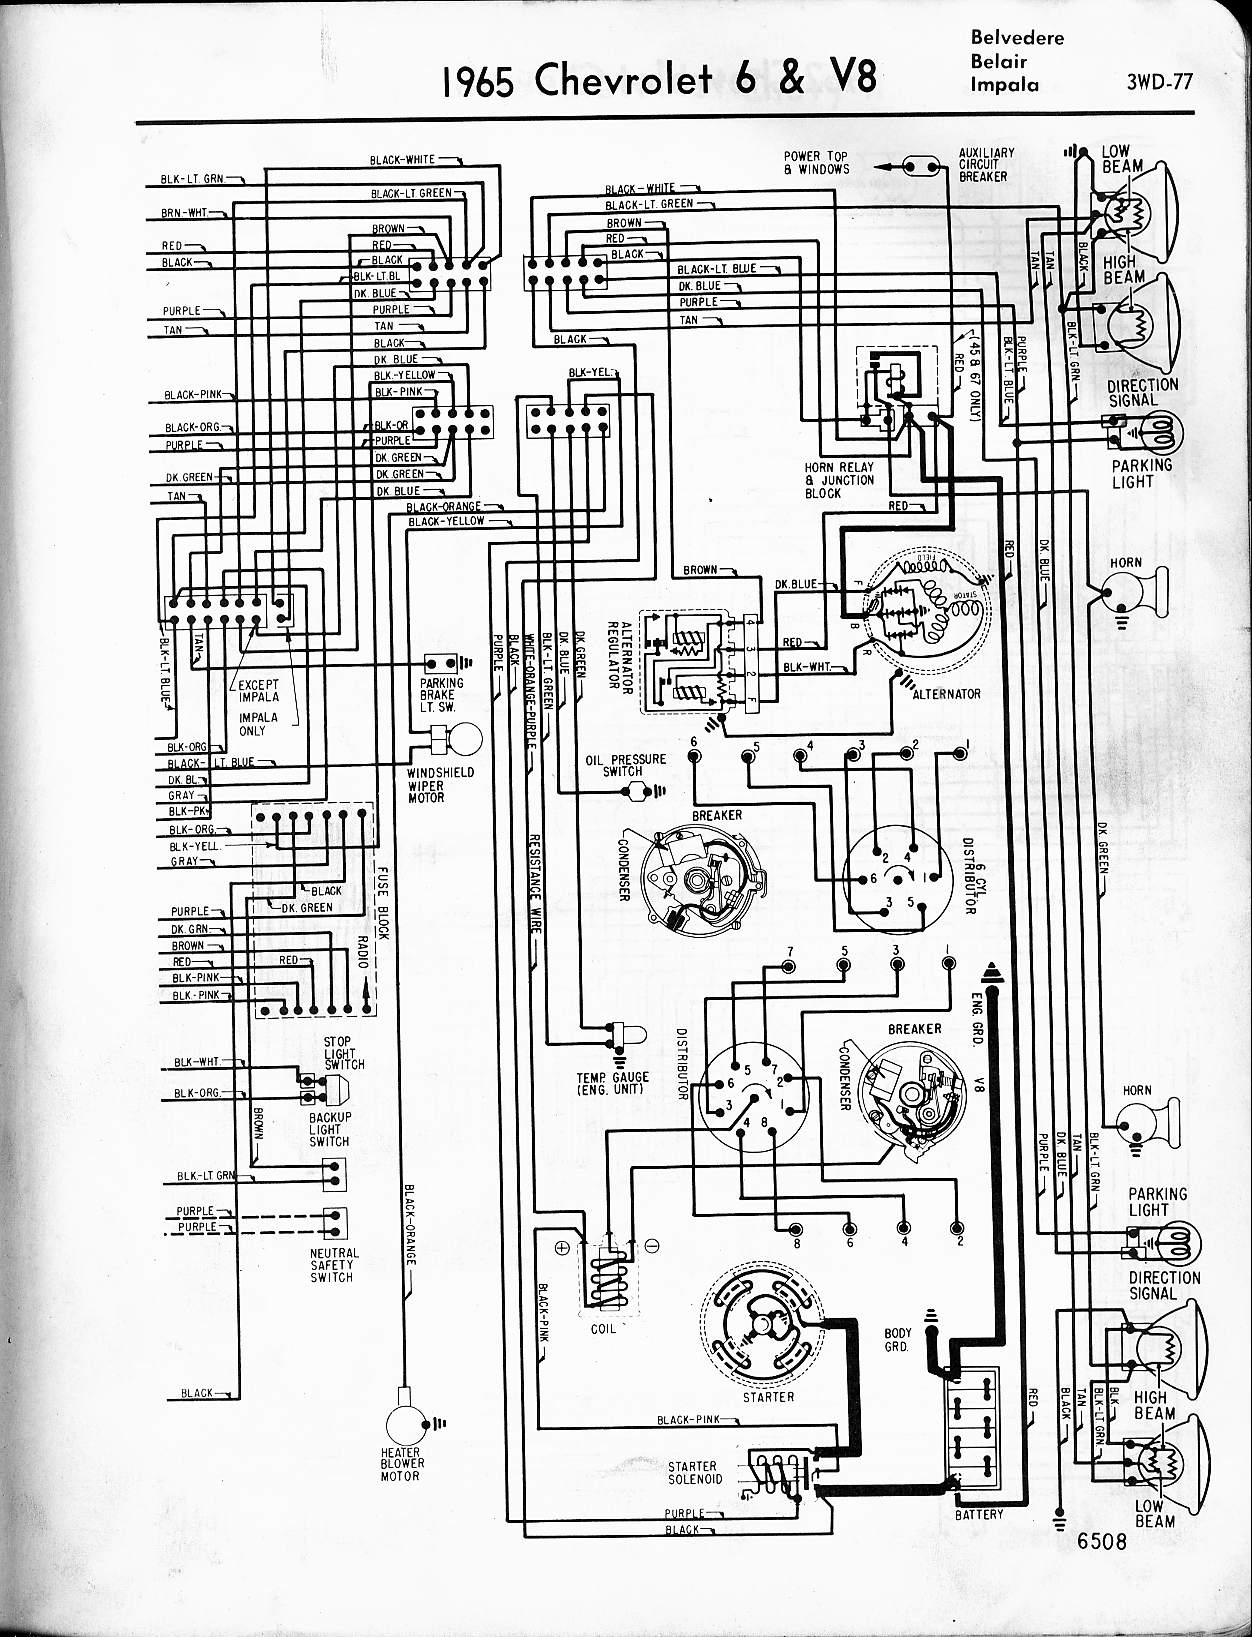 MWireChev65_3WD 077 chevy diagrams 1966 el camino wiring diagram at mifinder.co